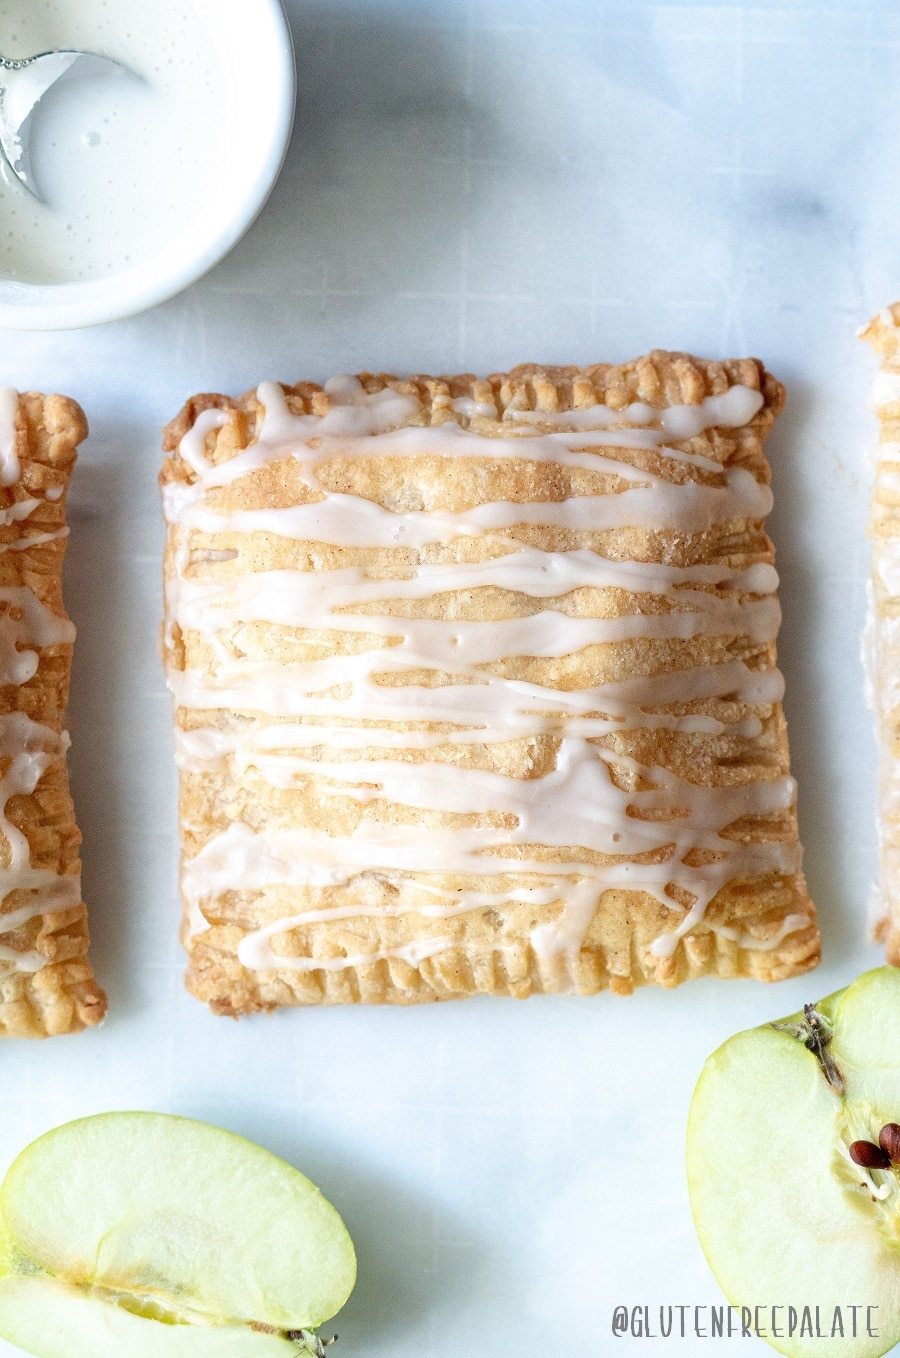 a close up of a apple turnover with a glaze drizzled on top, next to slices of green apple